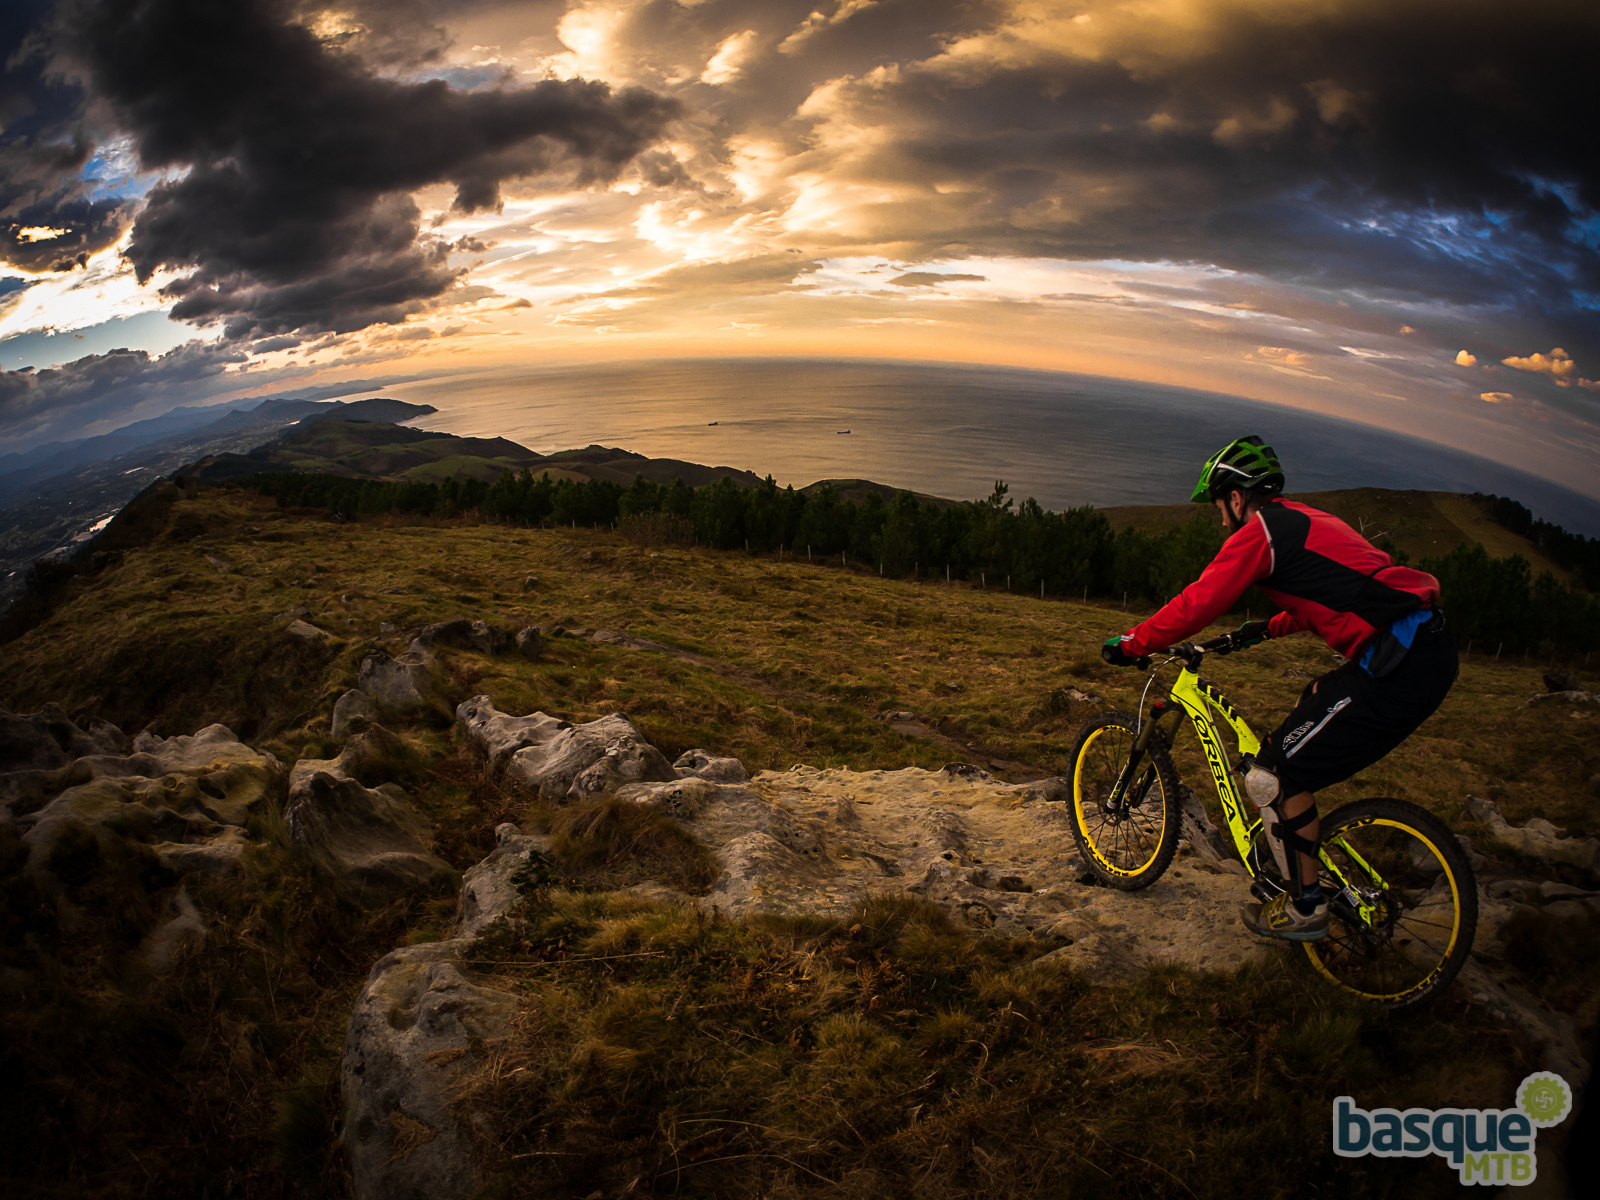 Riding the Orbea Rallon at sunset on the trails it was designed on.